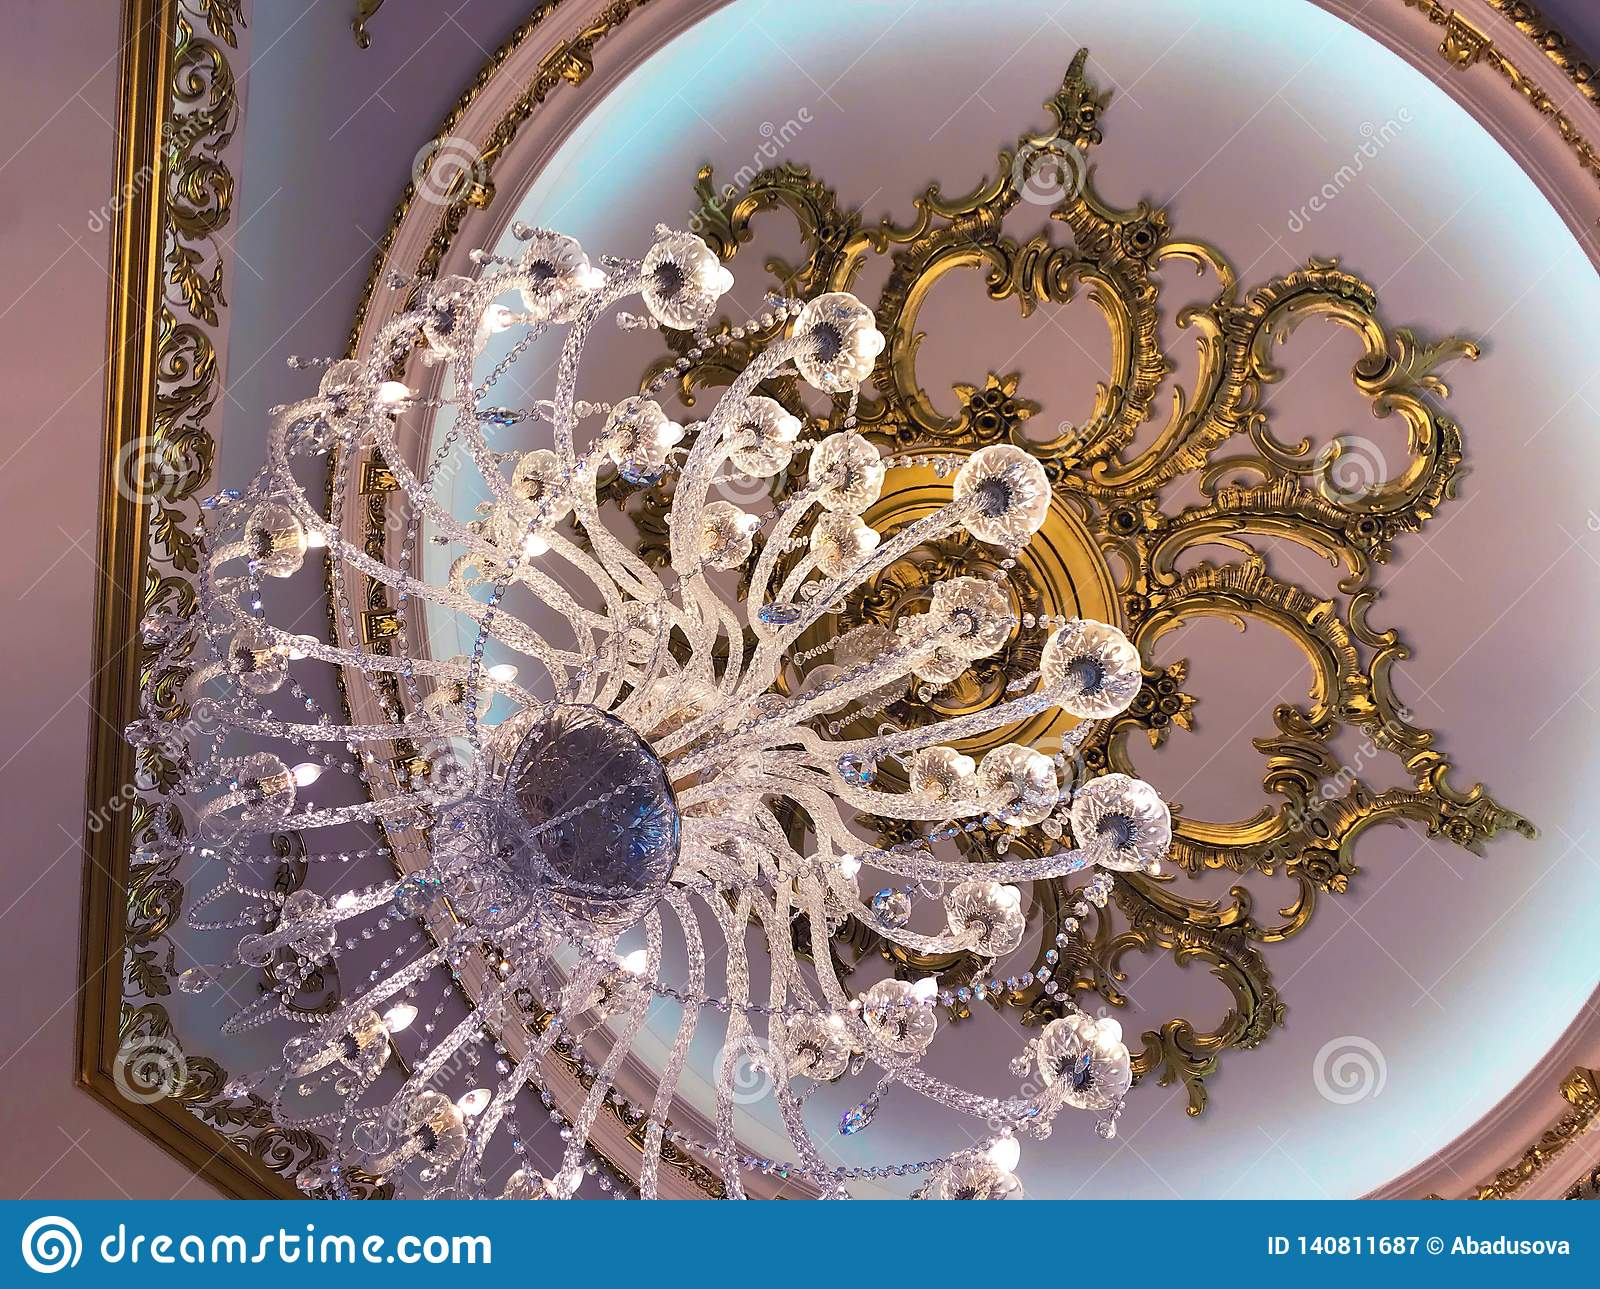 Chrystal chandelier lamp on the ceiling in Dining room Adjusting the image in a Luxury tone .Decorative elegant vintage